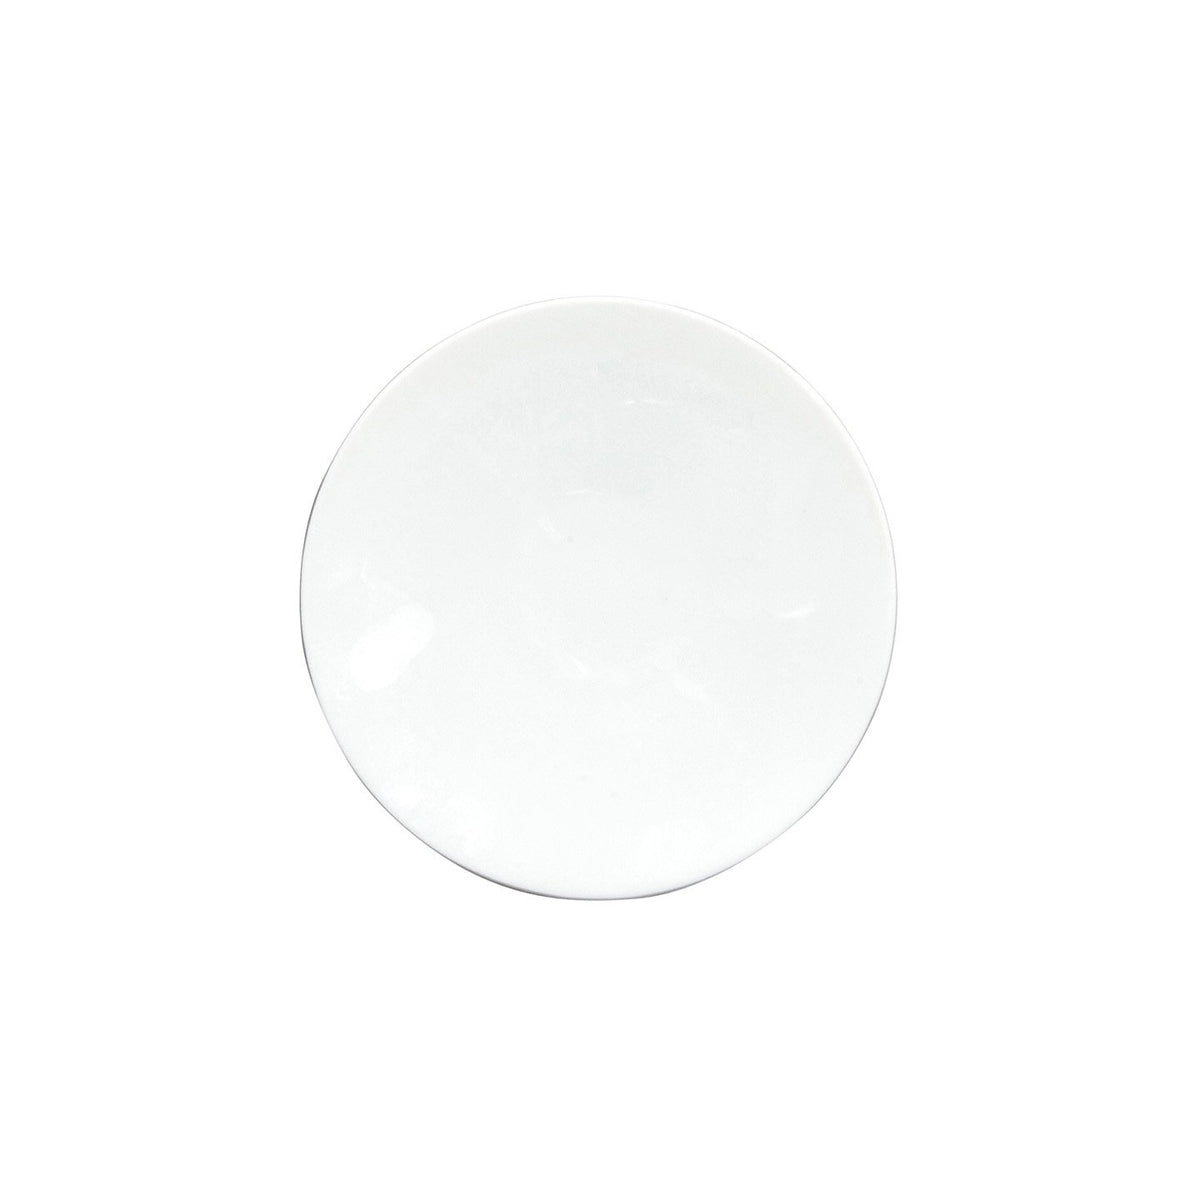 Monceau Platinum Porcelain Bread and Butter Plate